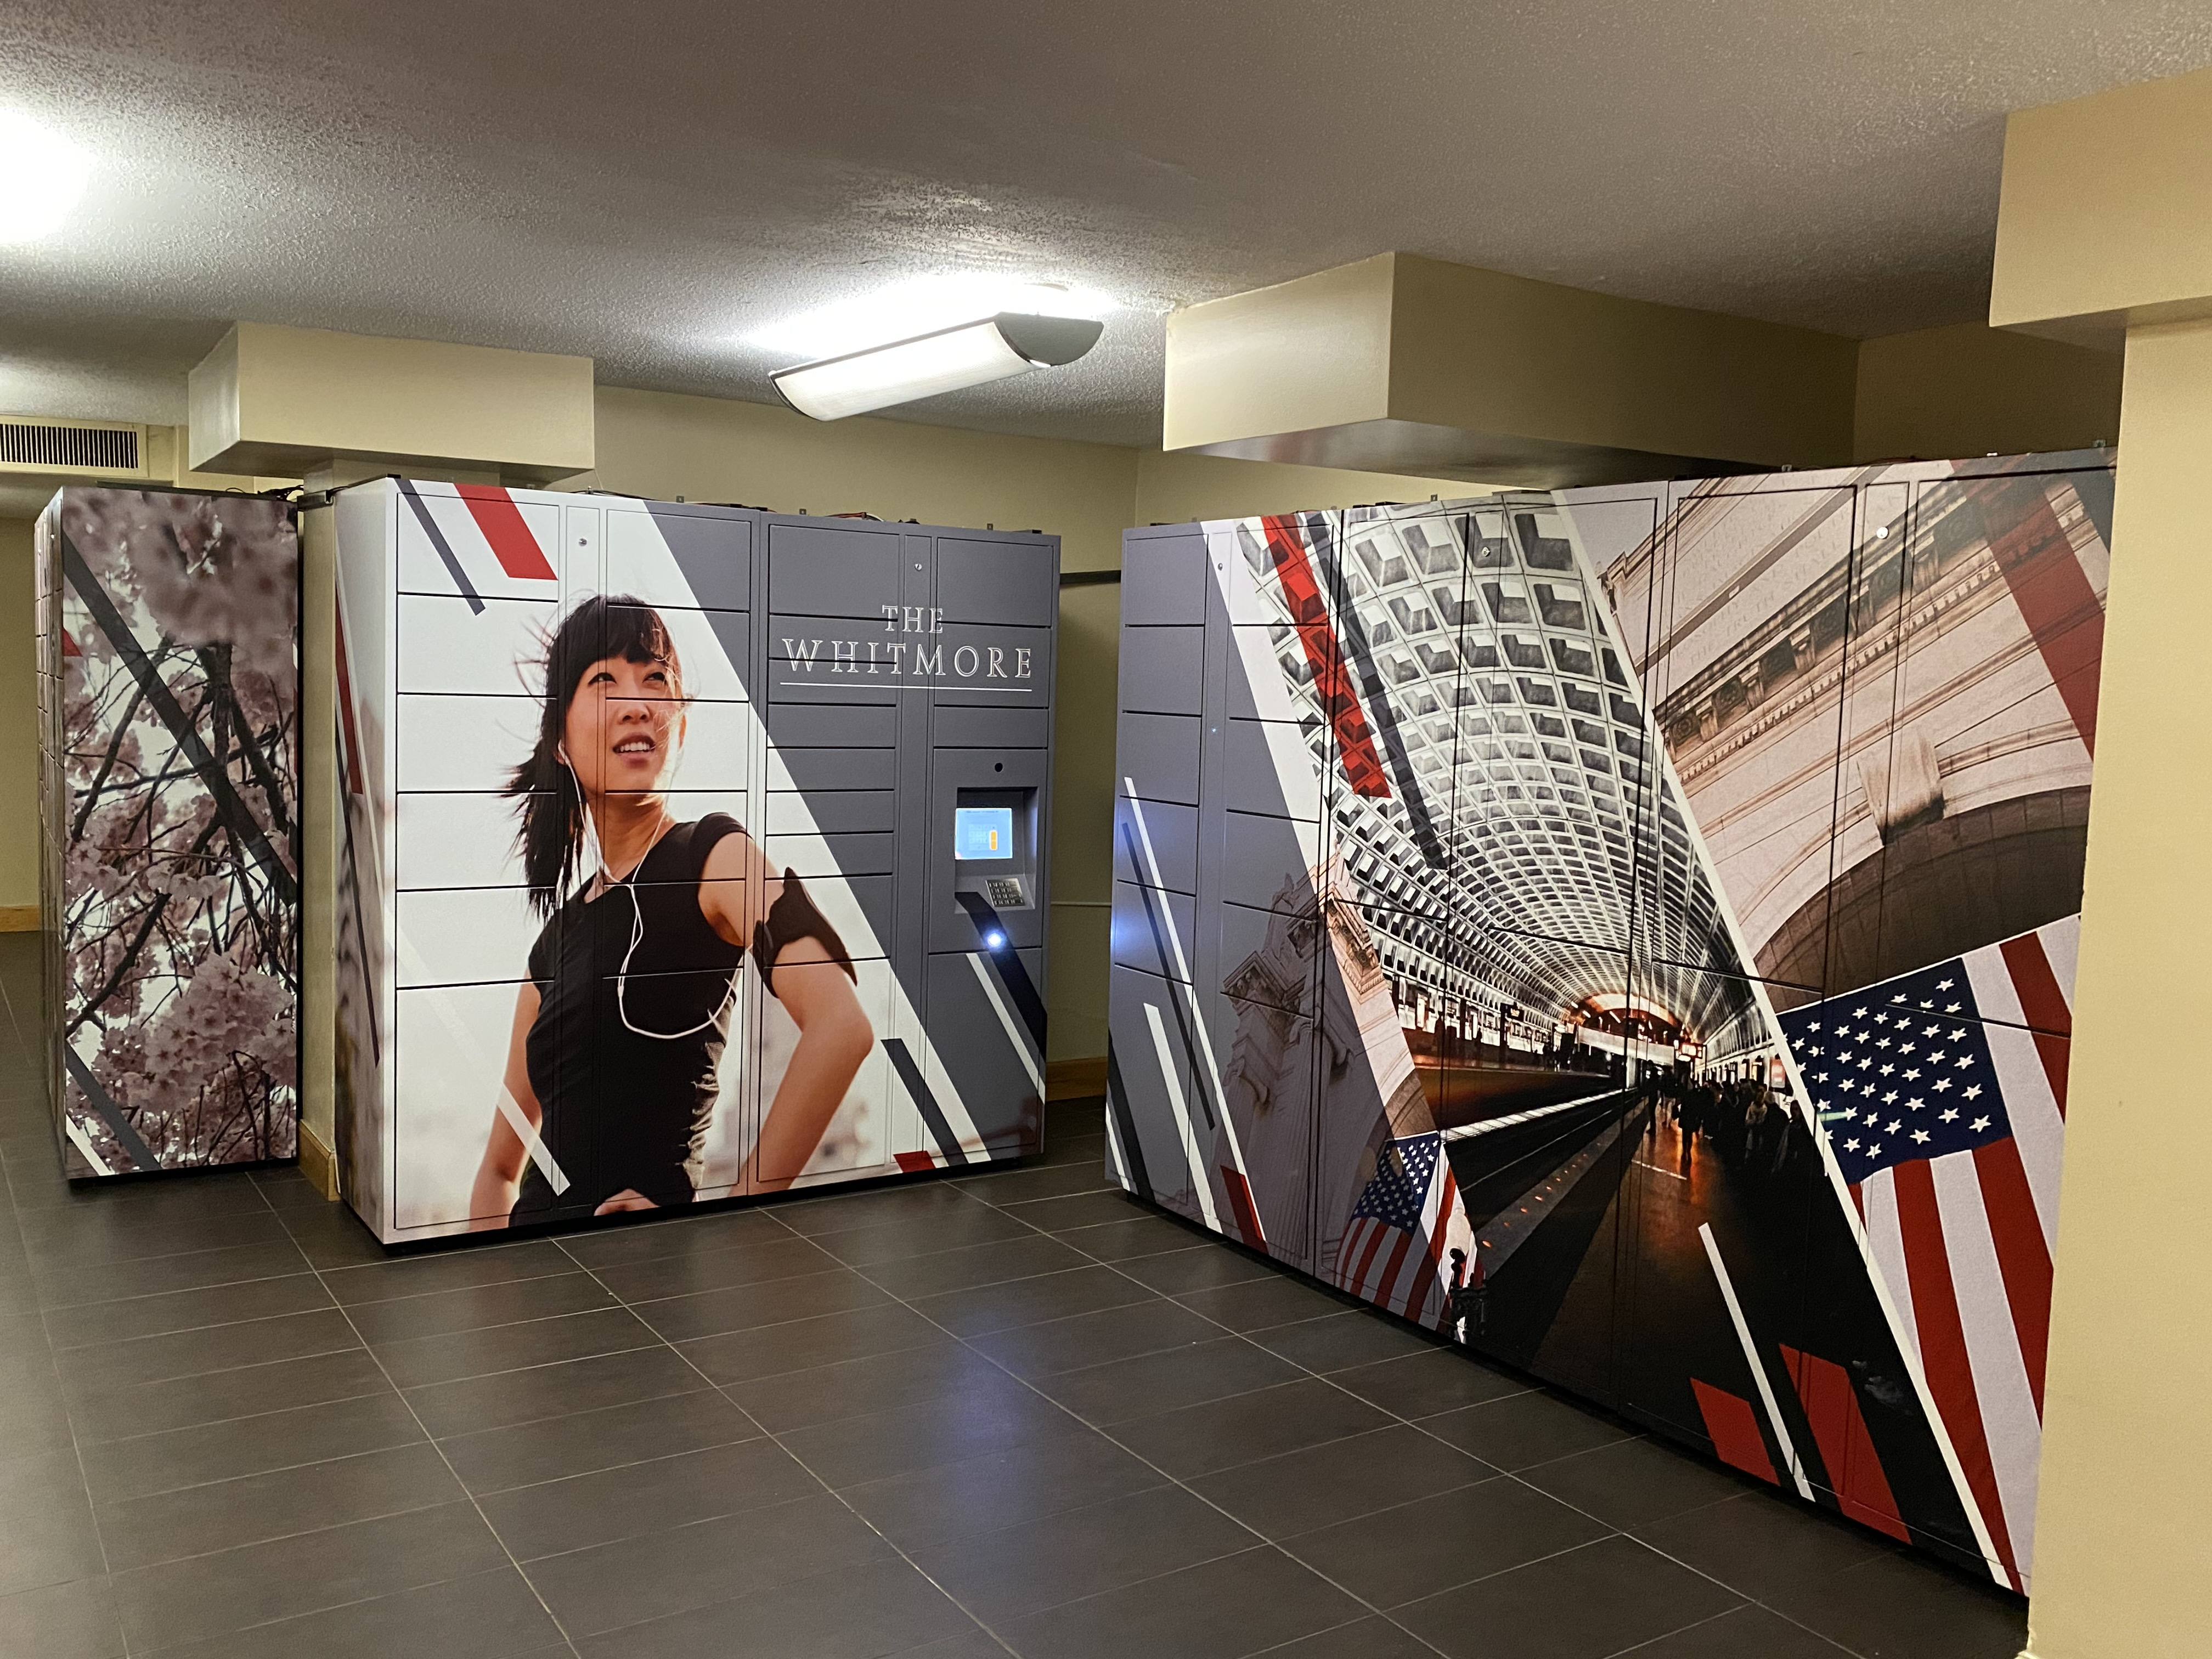 Locker graphics printed and installed by Axis Graphic Installations